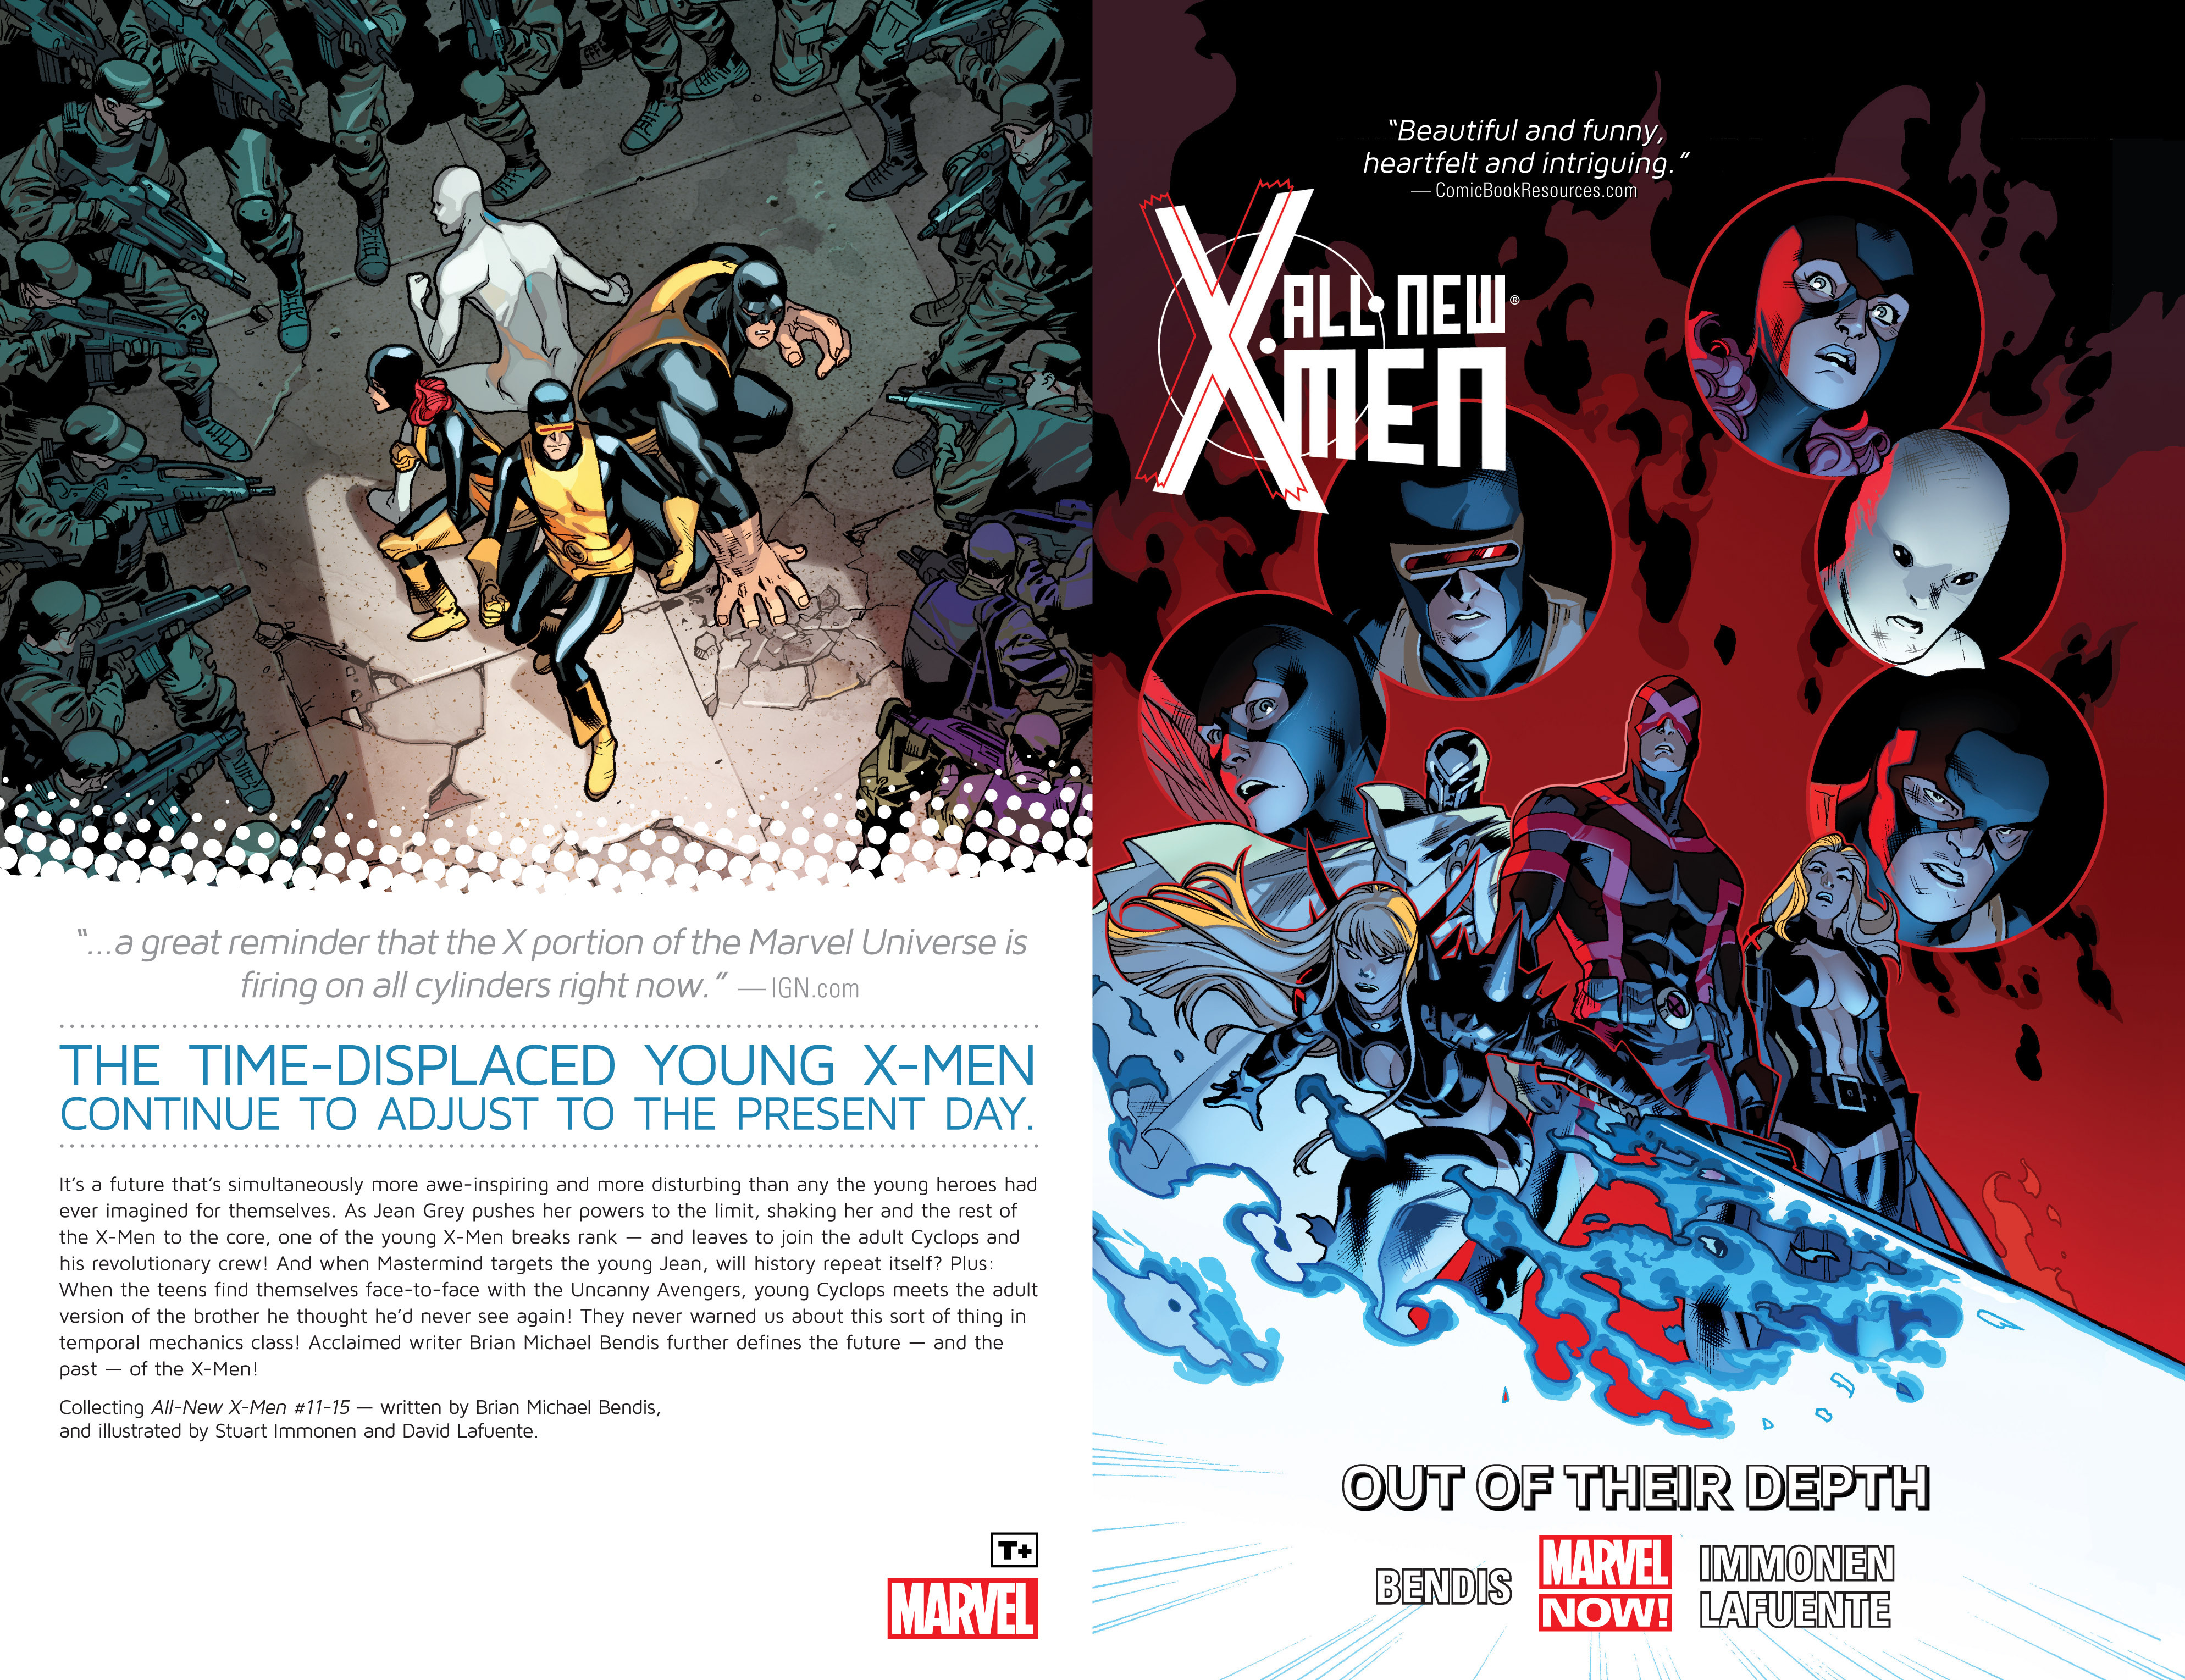 Read online All-New X-Men (2013) comic -  Issue # _Special - Out Of Their Depth - 2